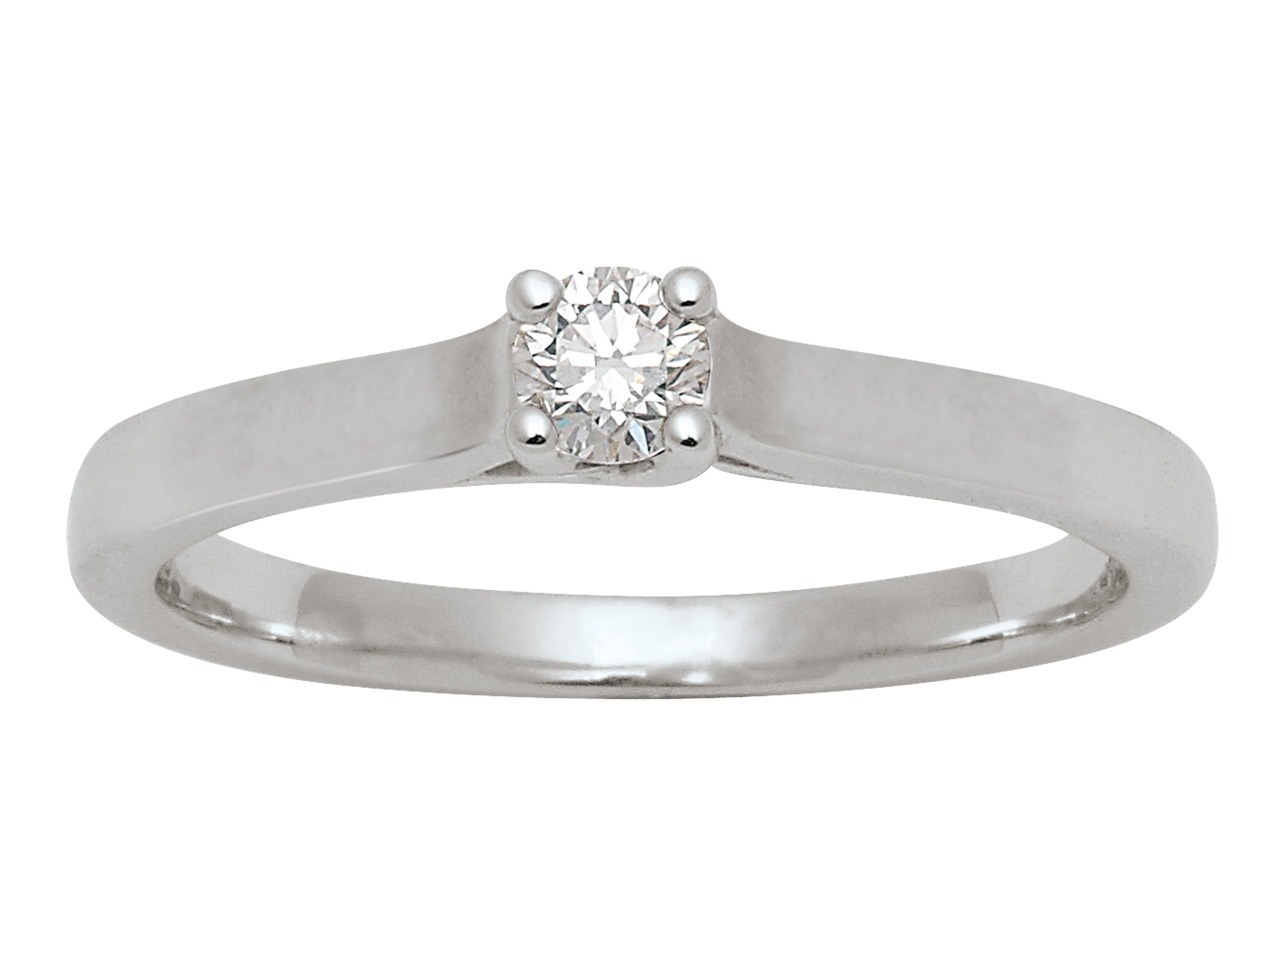 Bague Solitaire, or gris 18k, diamants 0,15 ct, doigt 56